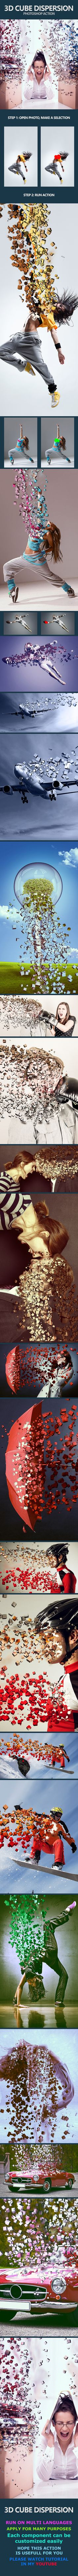 Cube Dispersion Photoshop Action Creates An Amazing Effect Helpful For Your Design